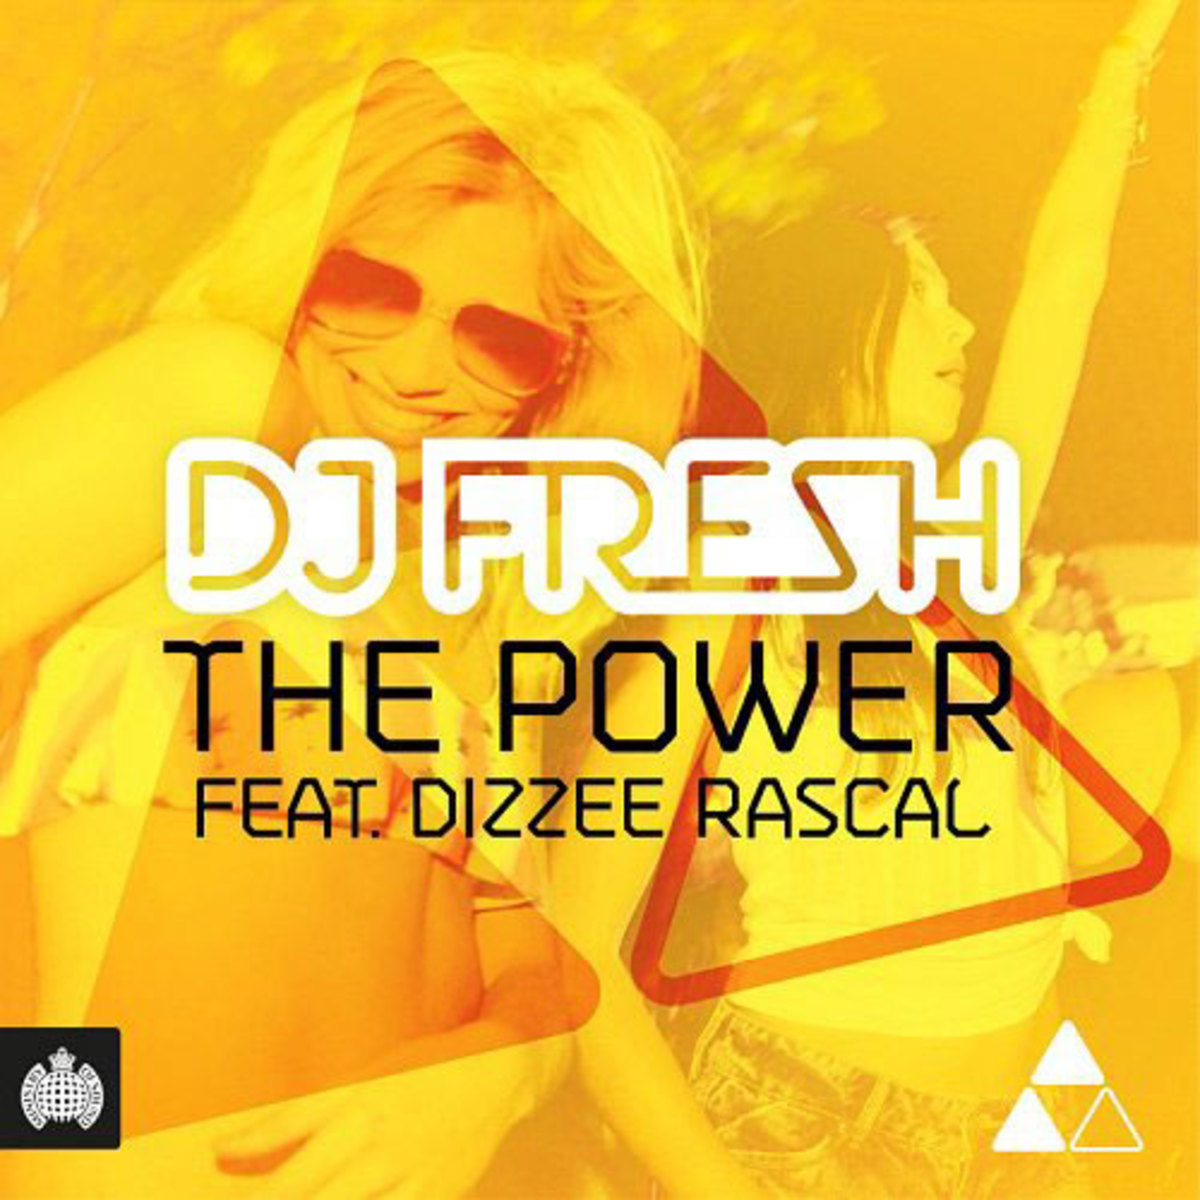 djfresh-thepower.jpg